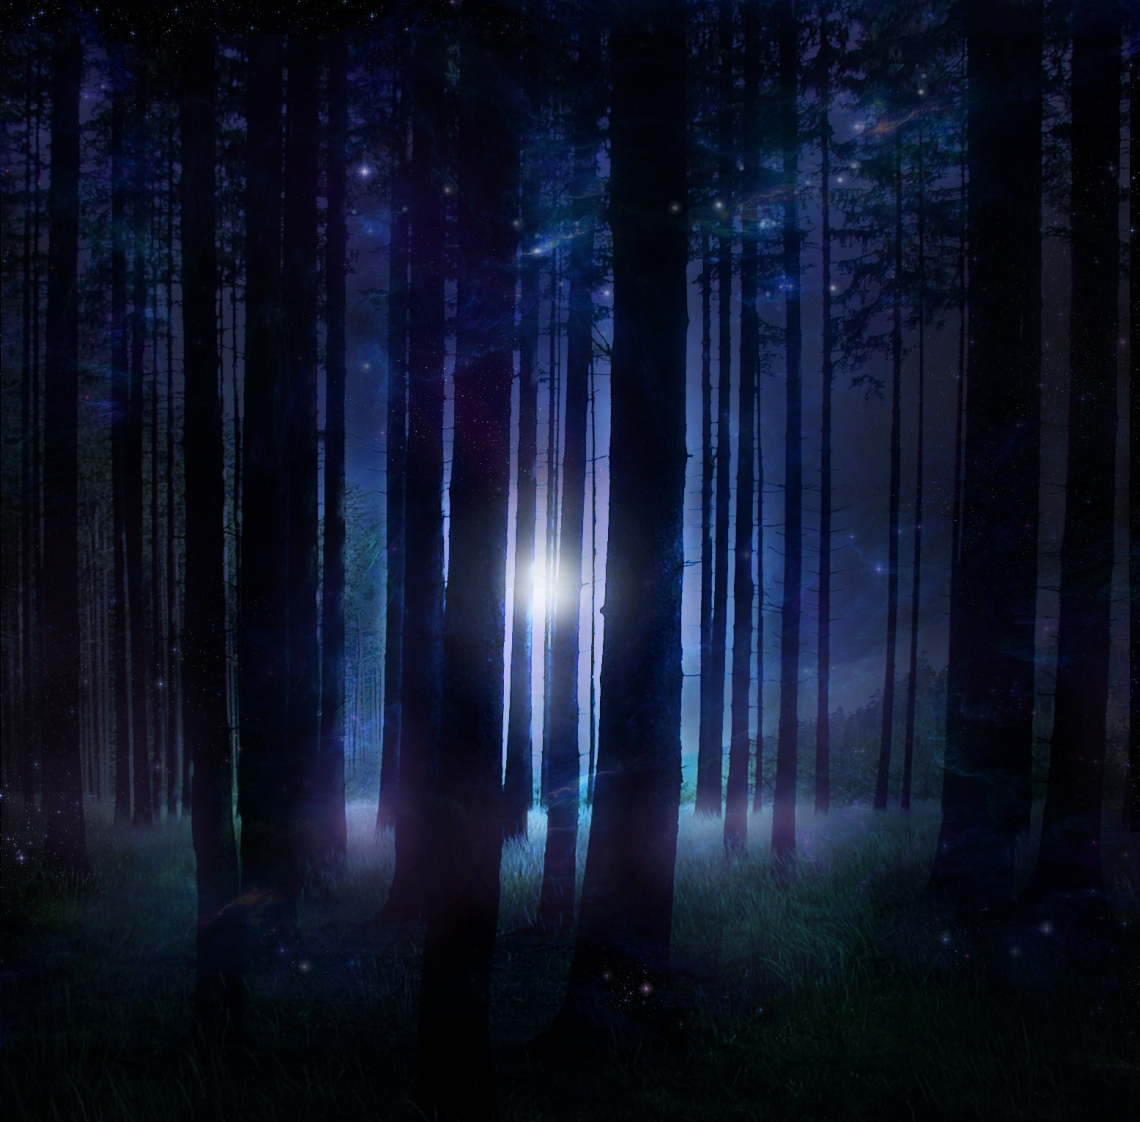 Magical Forest STOCK by wyldraven on DeviantArt